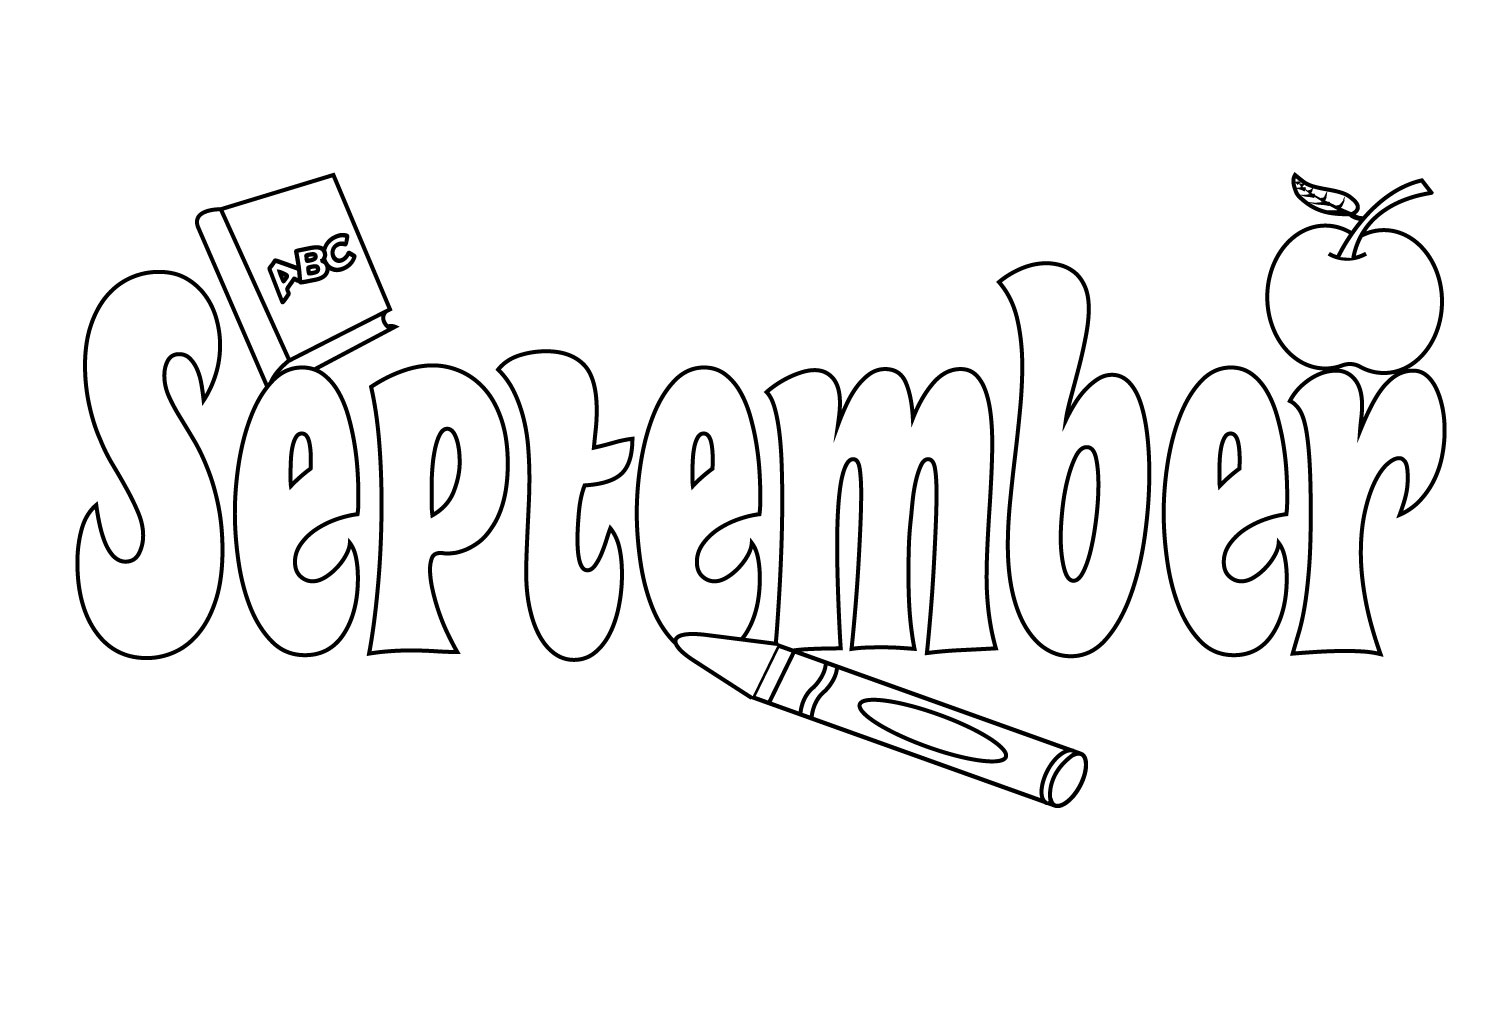 September Coloring Pages To Print Preschool Kindergarten